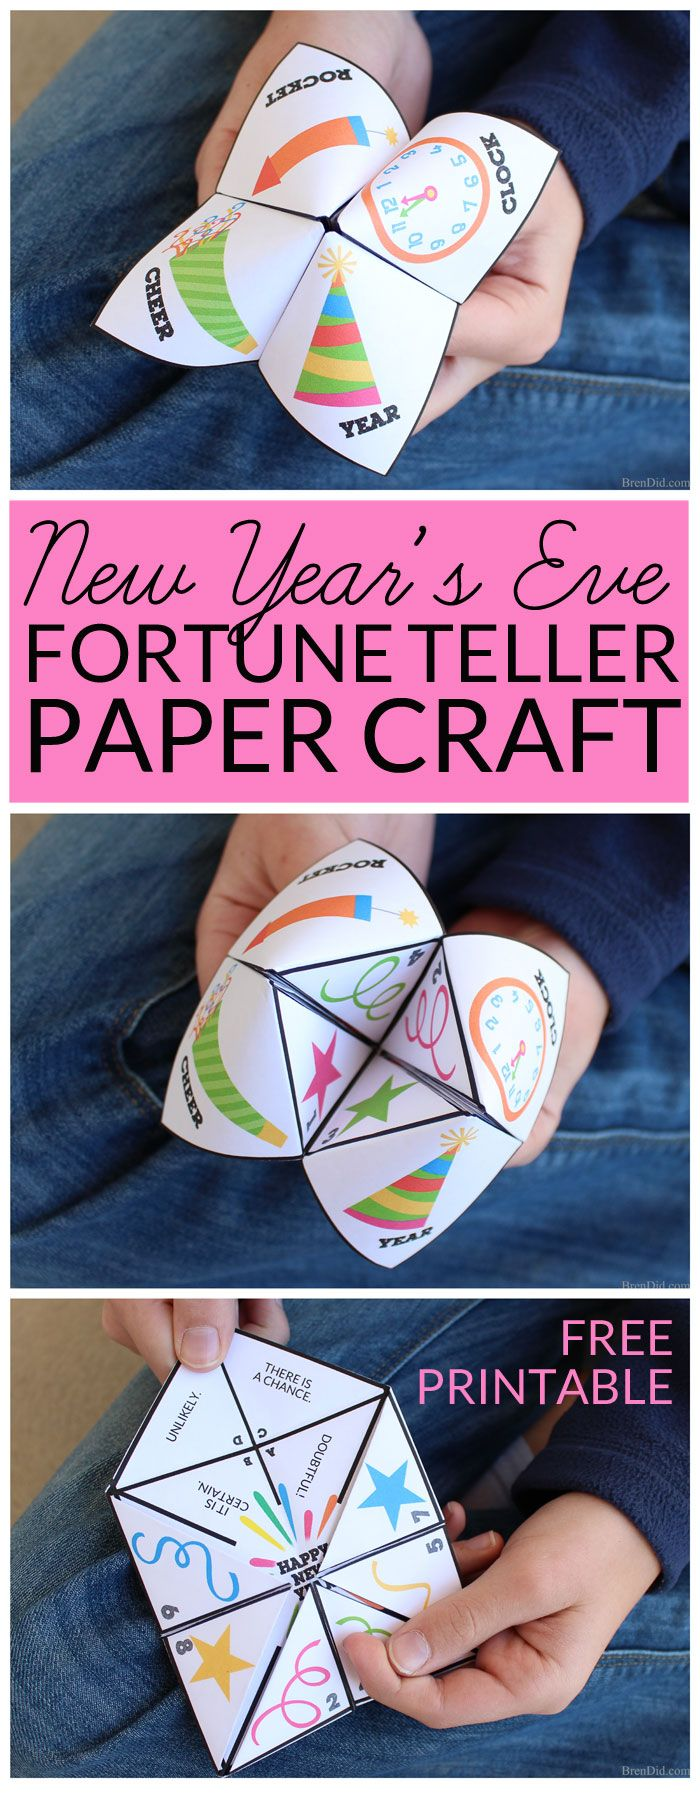 New Year's Eve Fortune Teller Paper Craft Paper fortune